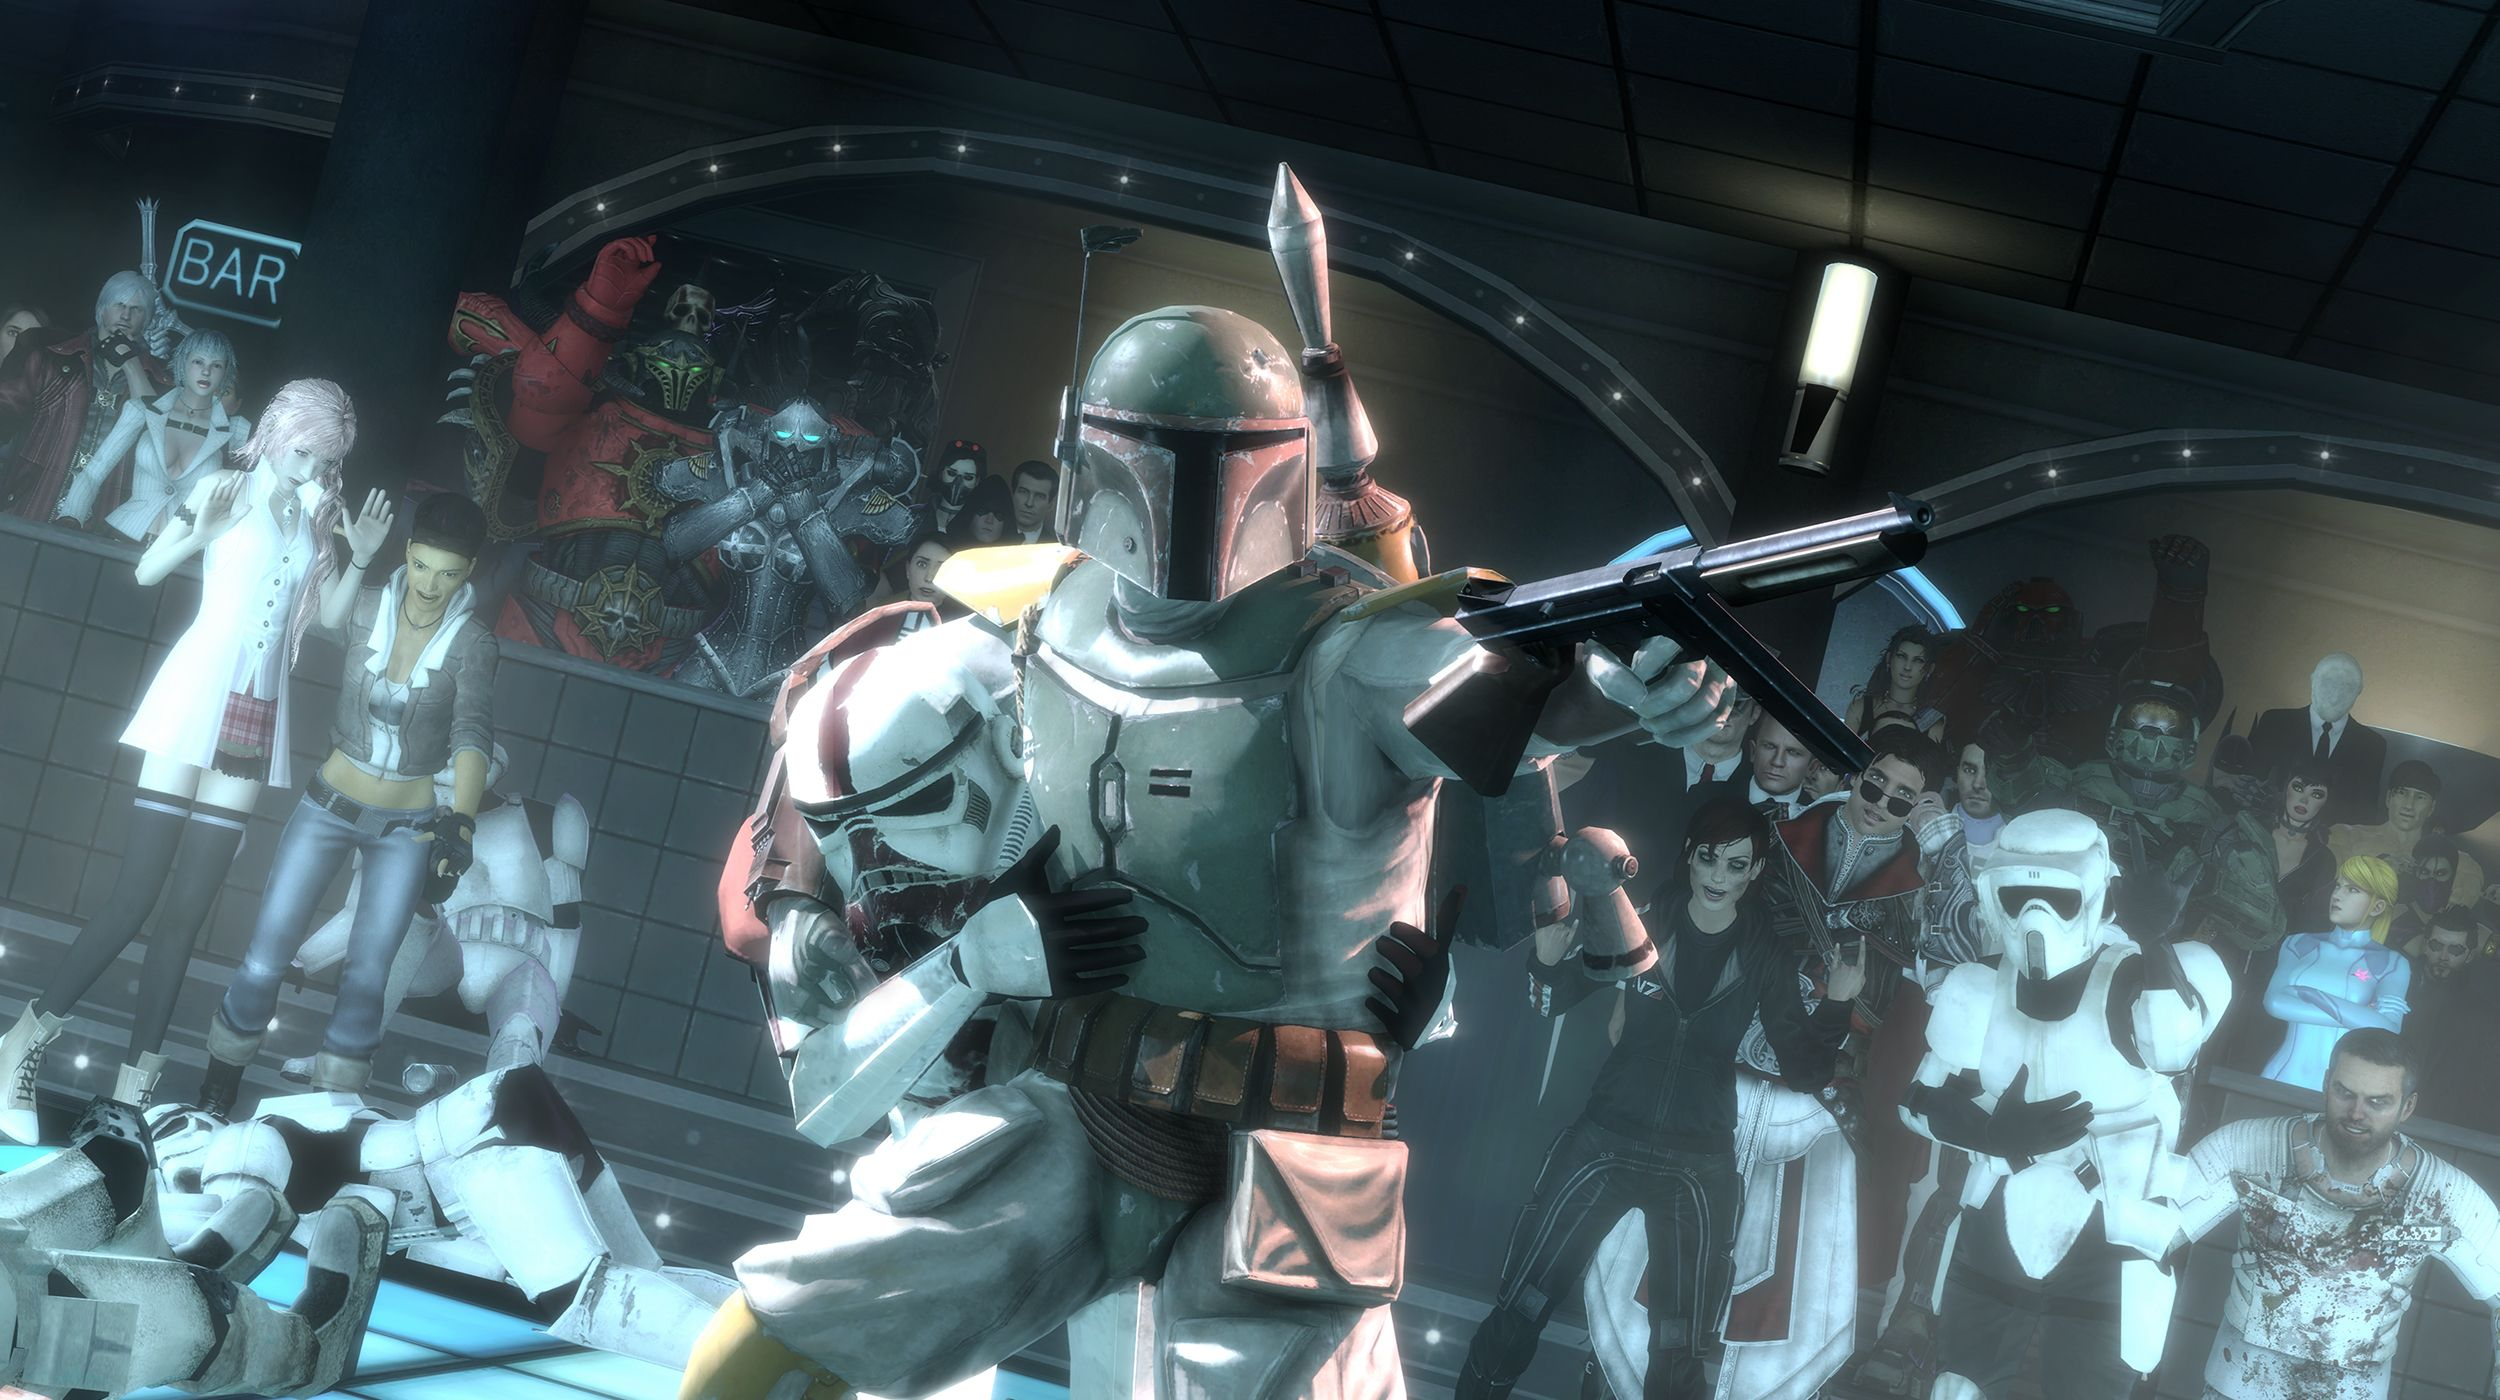 Wallpaper Of Boba Fett Star Wars Garrys Mod Background